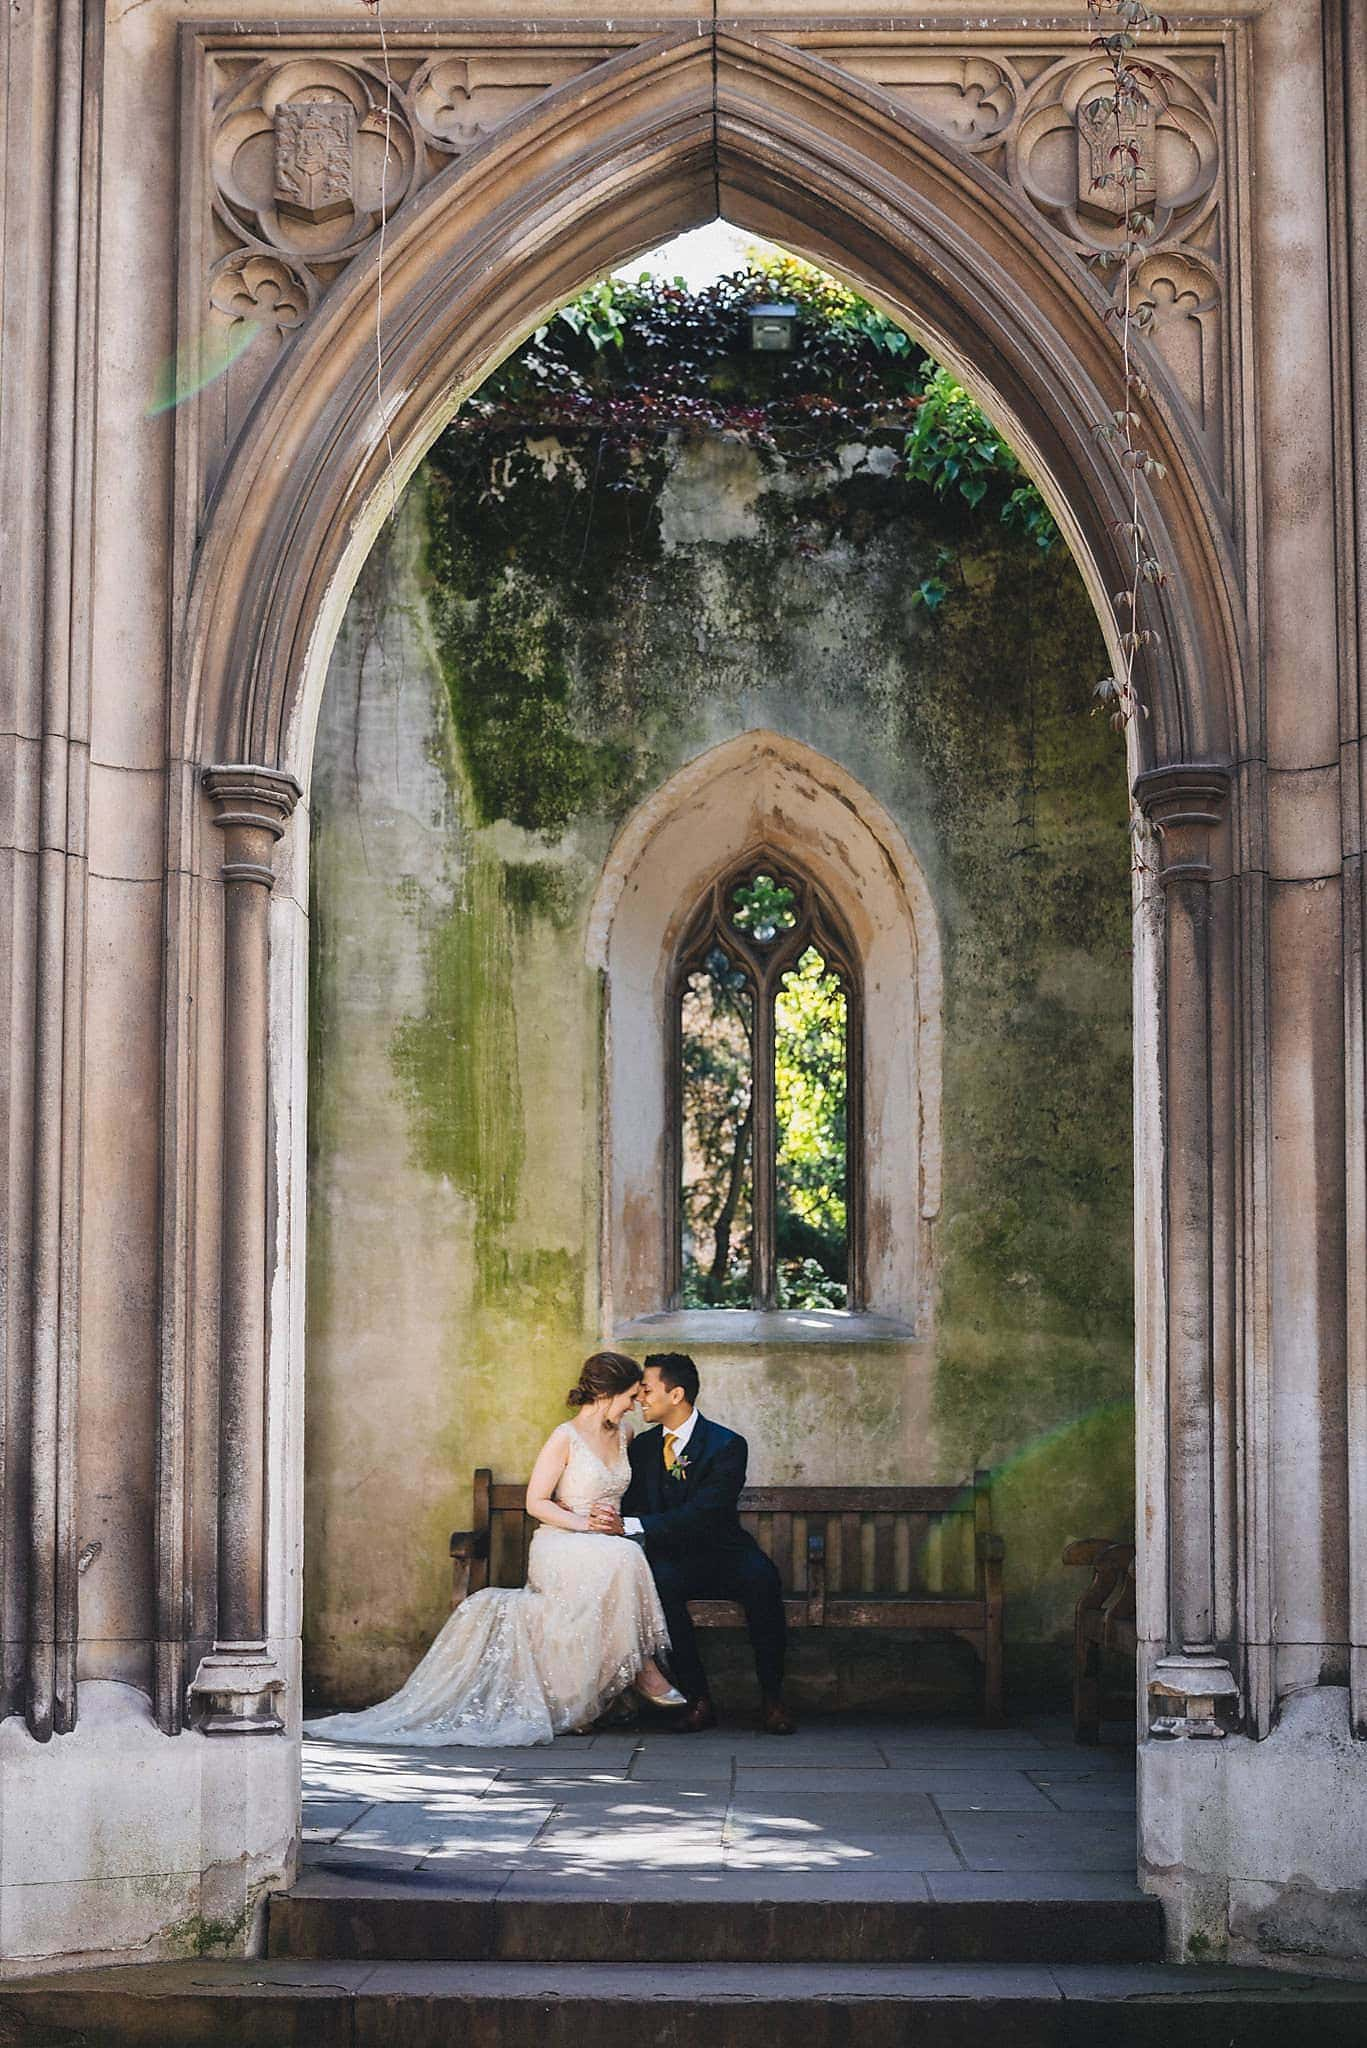 Bride and groom sit close on a bench at St Dunstan in the East in London